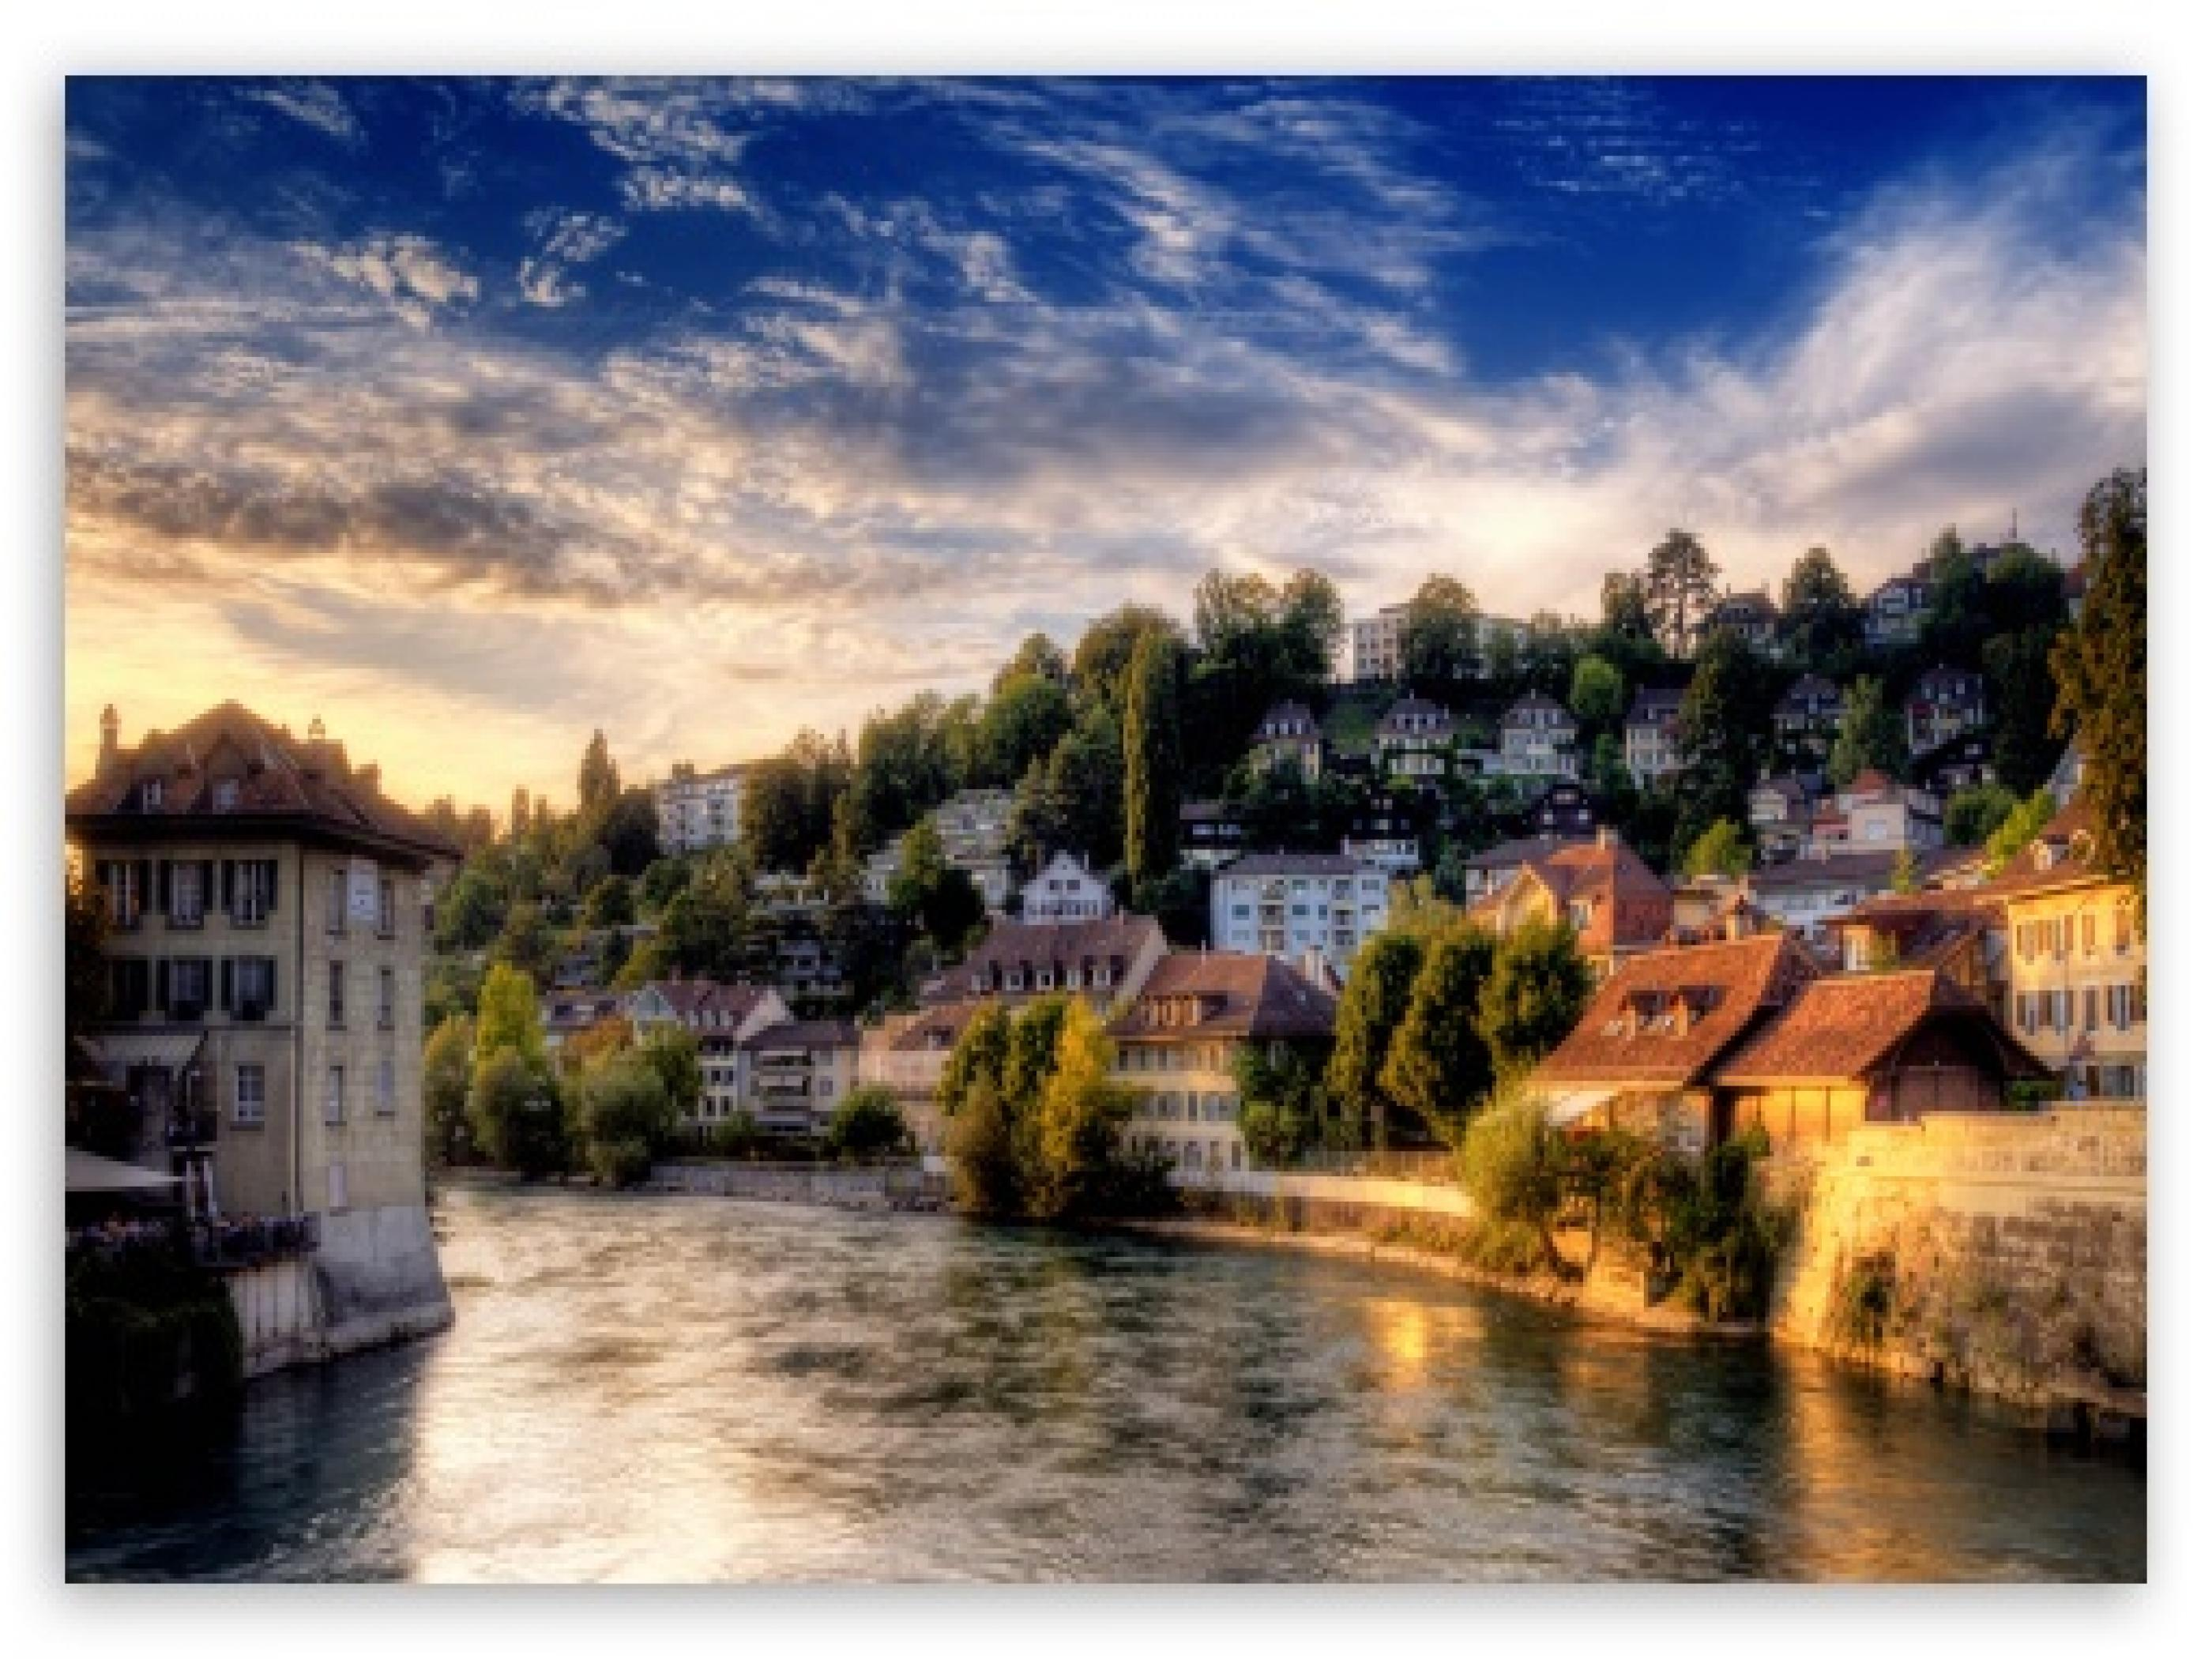 Ultra HD Bern Wallpapers #641K9LT | WallpapersExpert.com